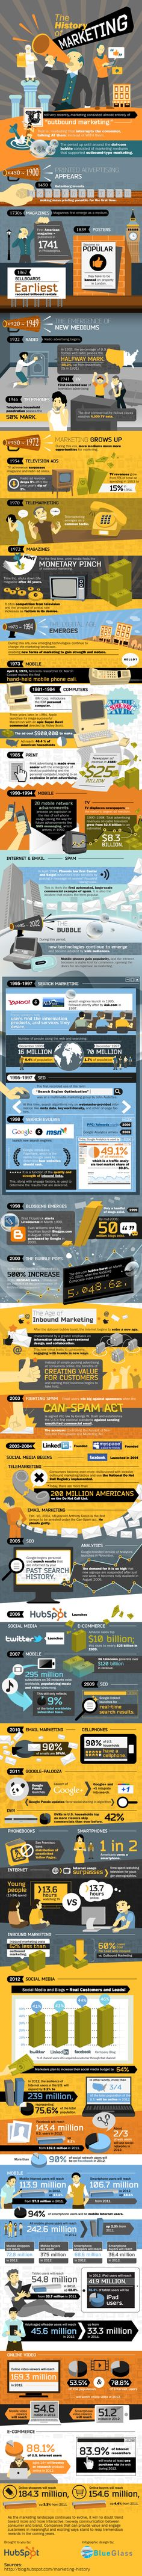 www.TapiaAdvertising.com The History of Marketing: An Exhaustive Timeline #infographic @HubSpot